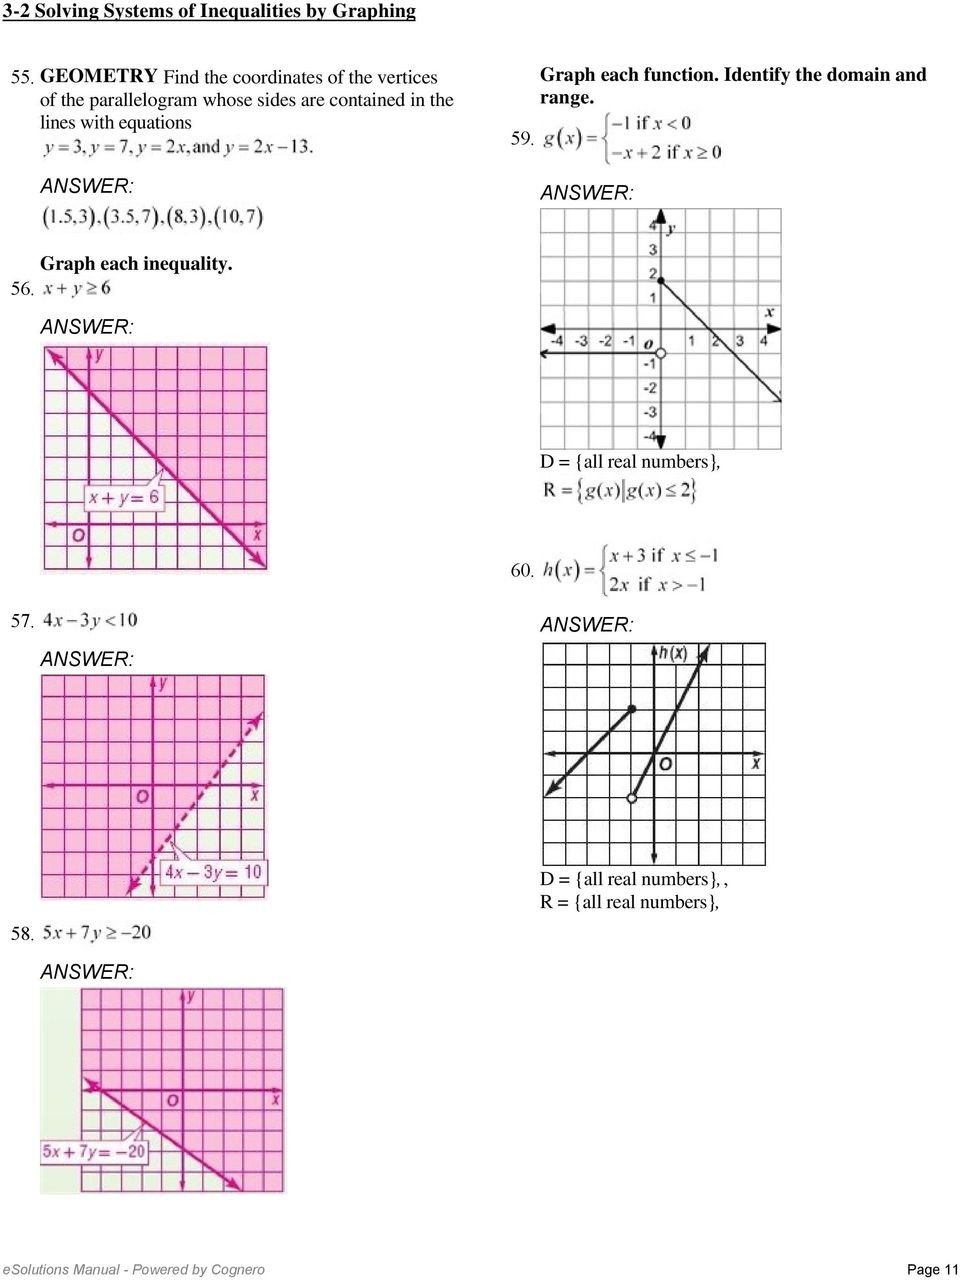 Solving Systems Of Inequalities Worksheet 3 2 solving Systems Of Inequalities by Graphing solve Each